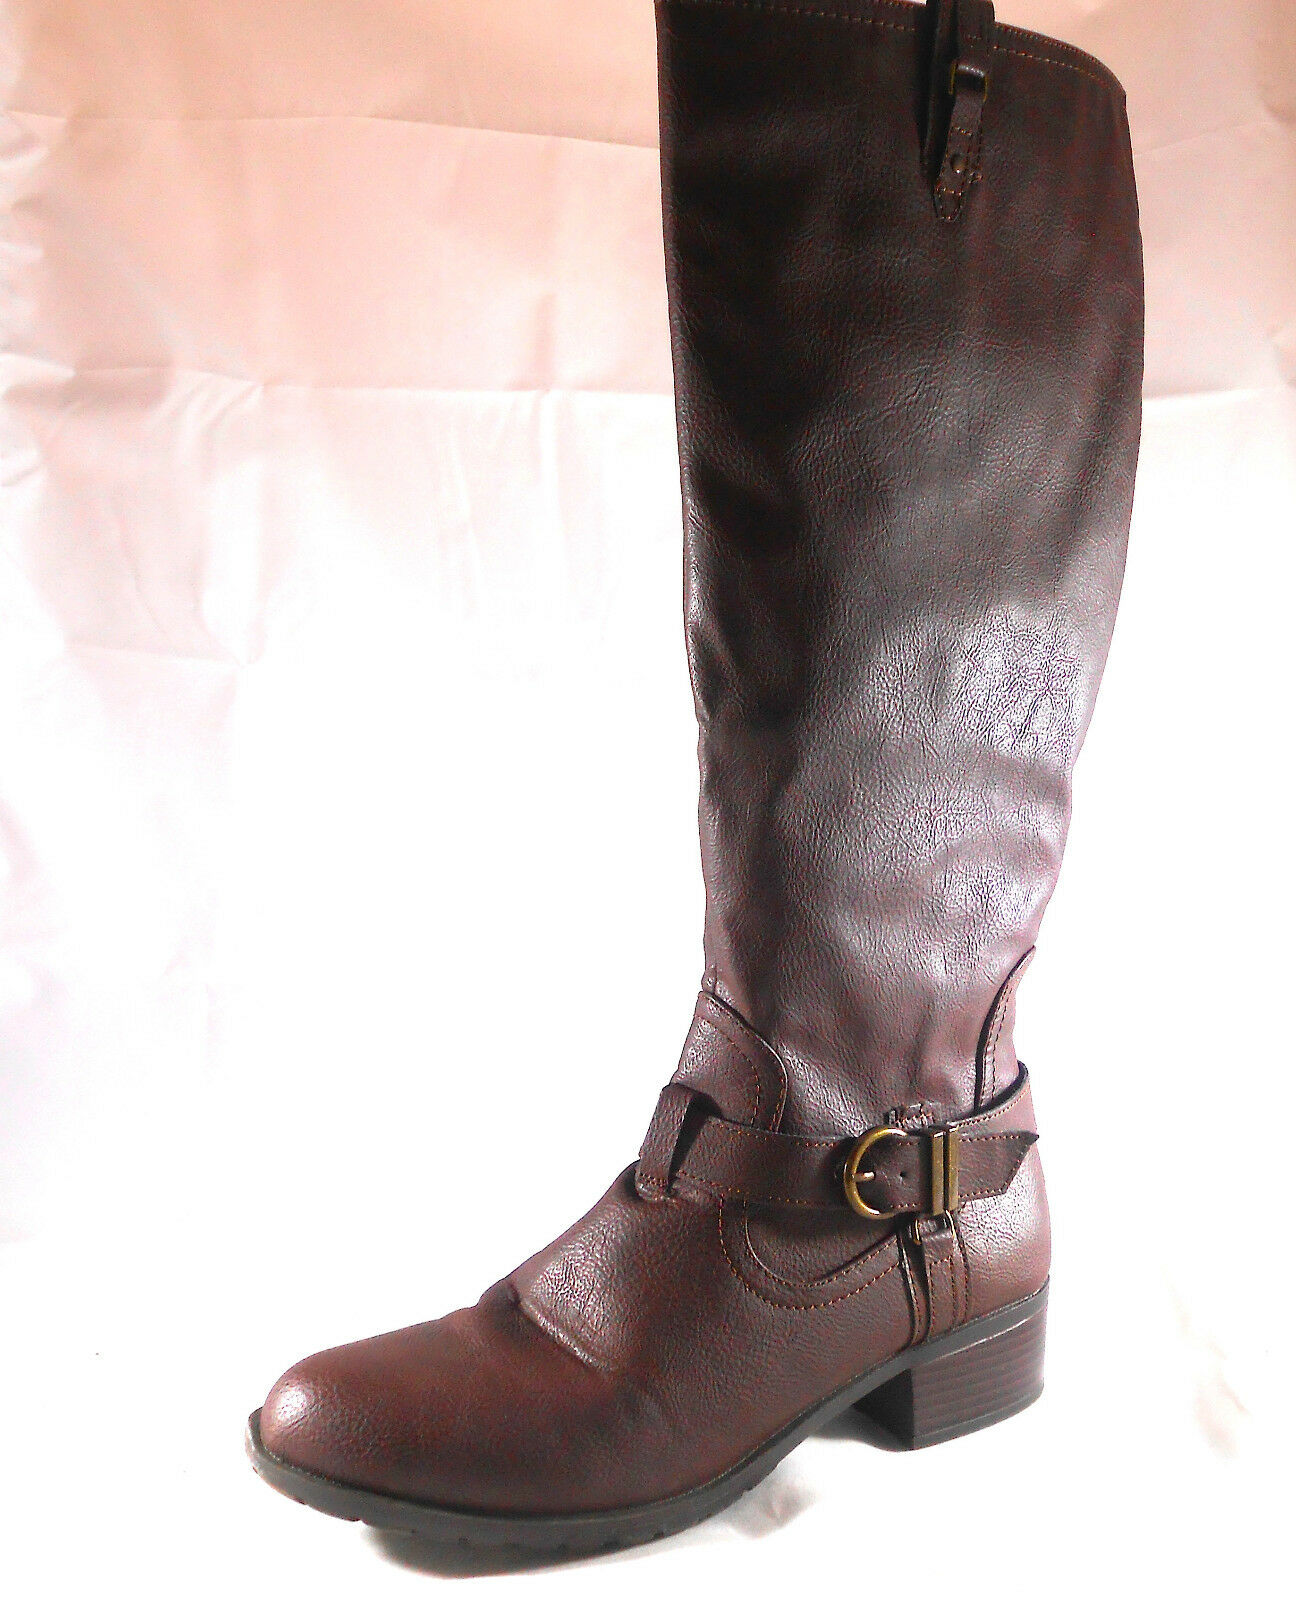 RAMPAGE Damenschuhe (INTENSE BROWN BOOT) Damenschuhe RAMPAGE SIZE 6.5 BRAND NEW b33cca